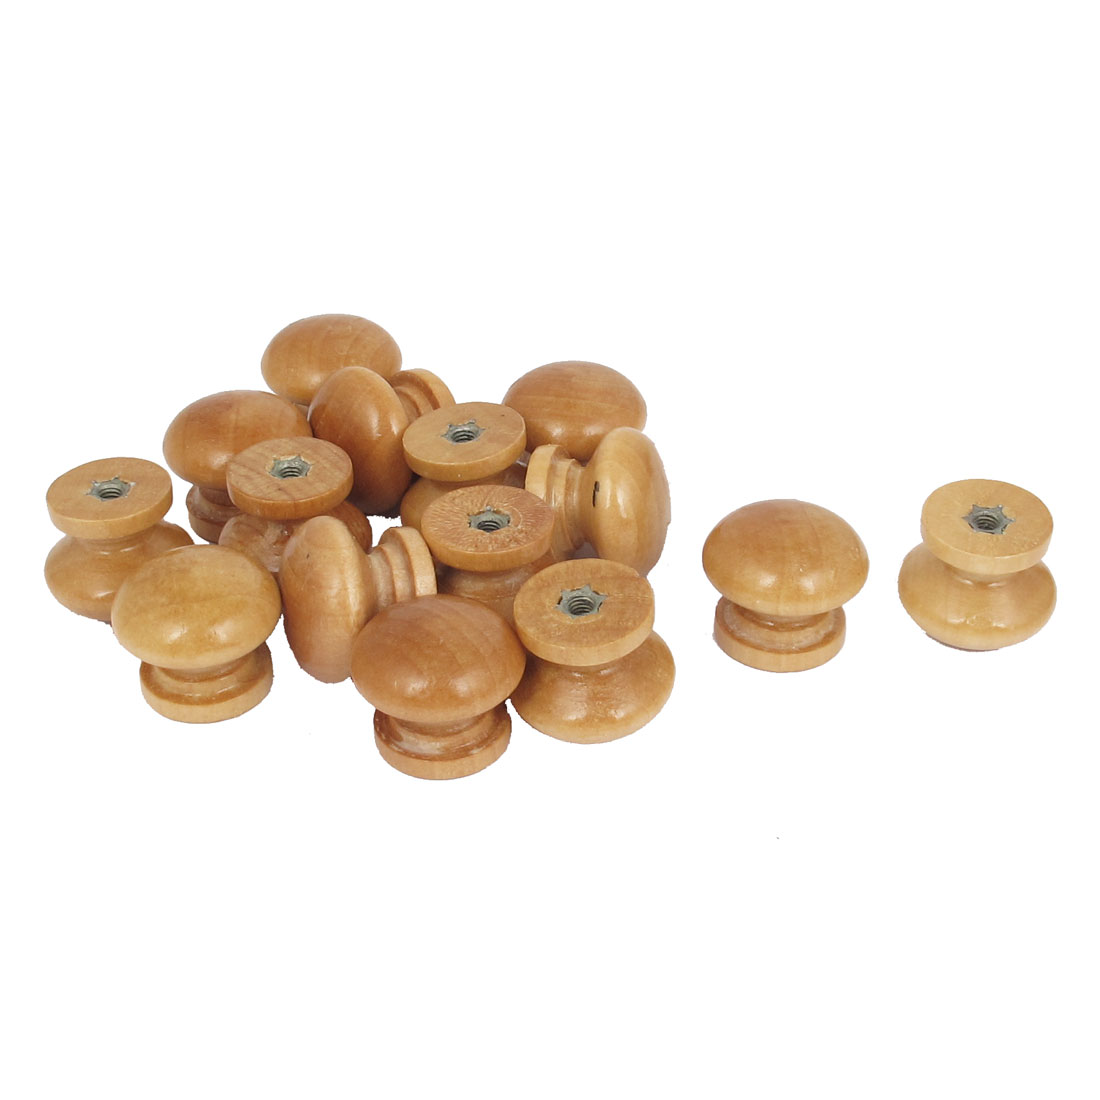 Wooden Round Shaped Home Cabinet Cupboard Drawer Pull Knob Handle Beige 15Pcs